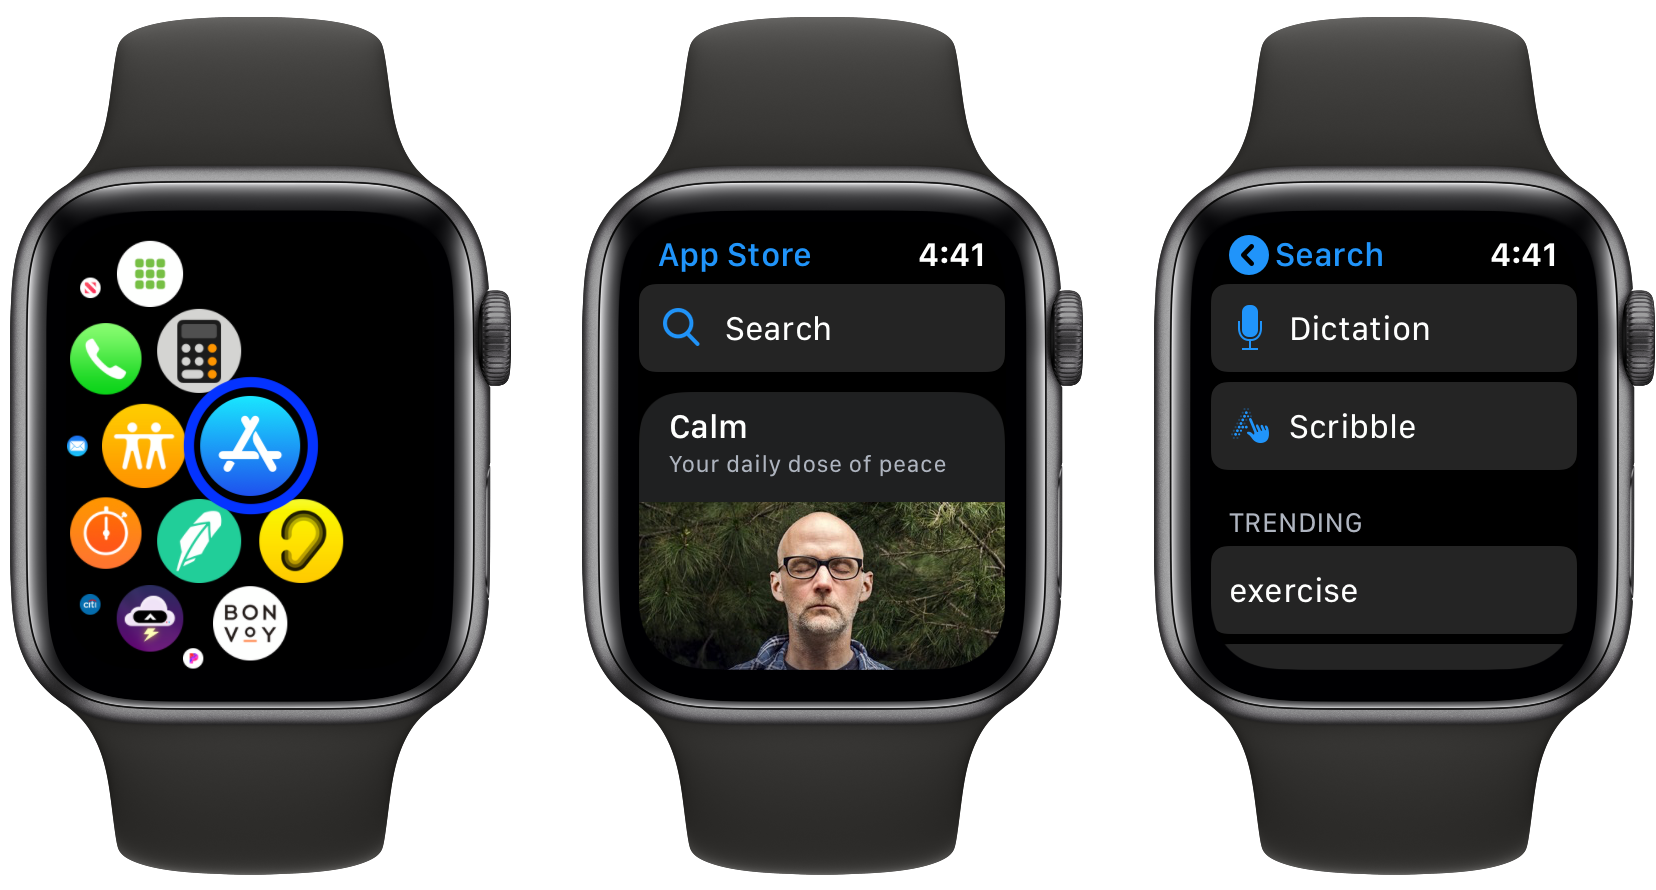 How to download apps directly on Apple Watch walkthrough